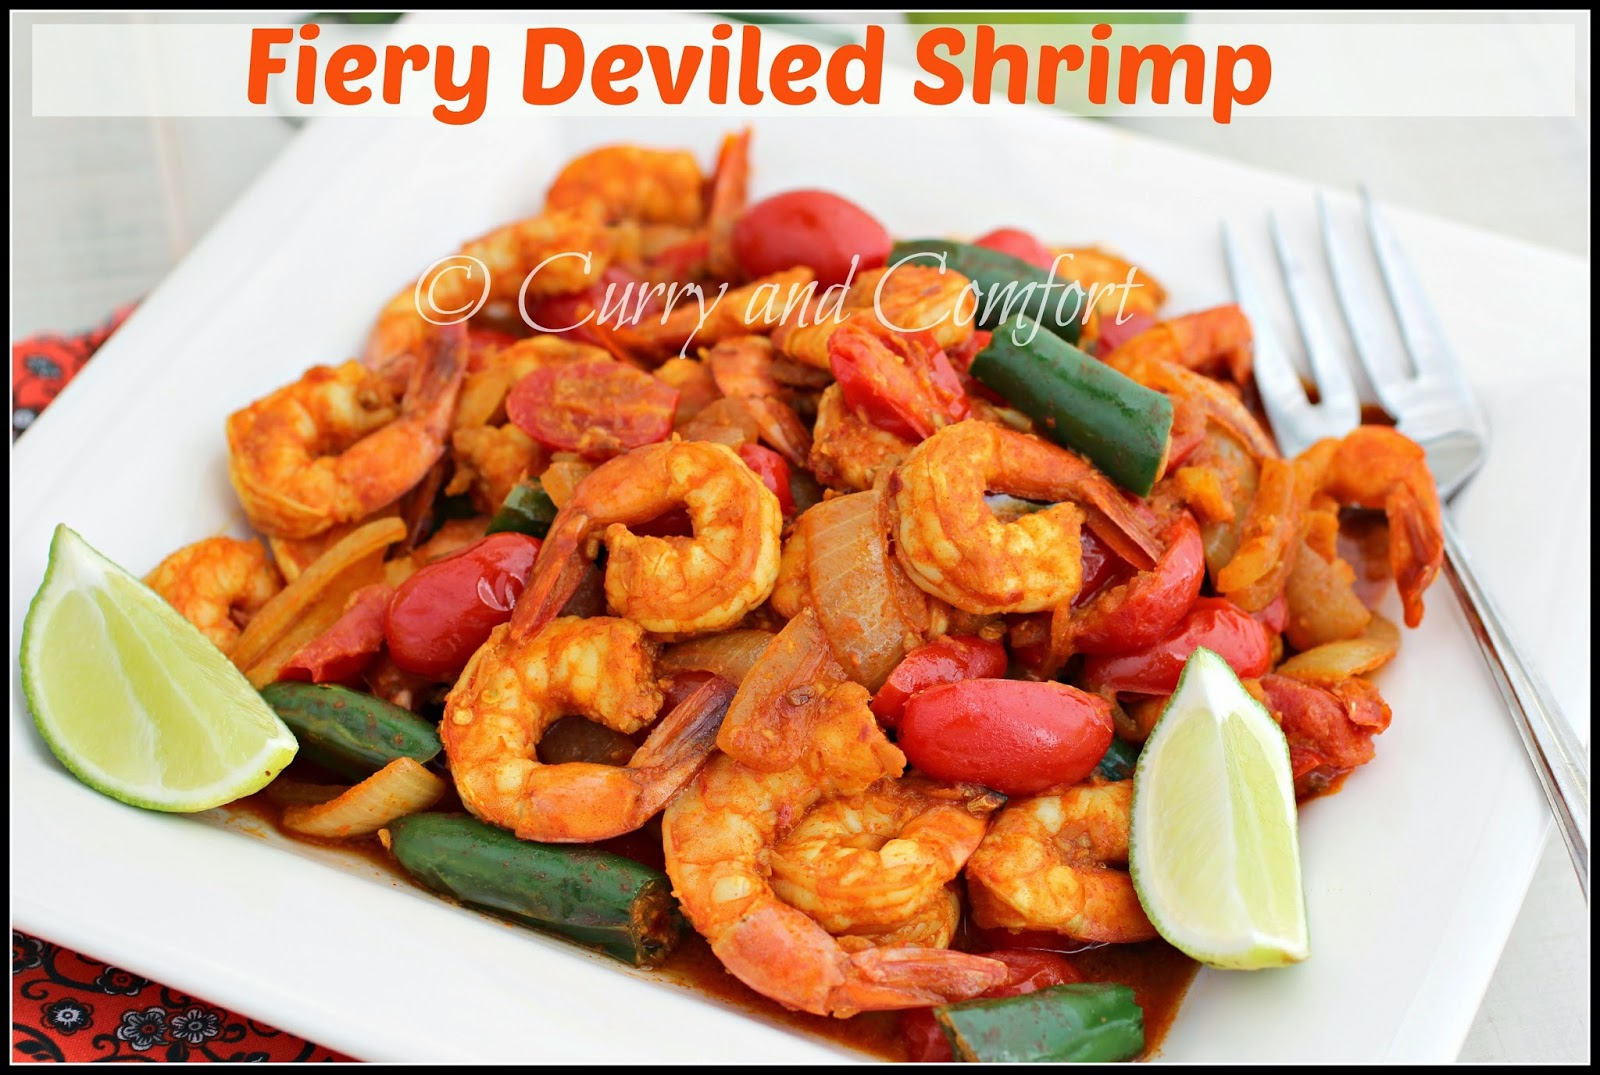 Kitchen Simmer: Fiery Deviled Shrimp Curry